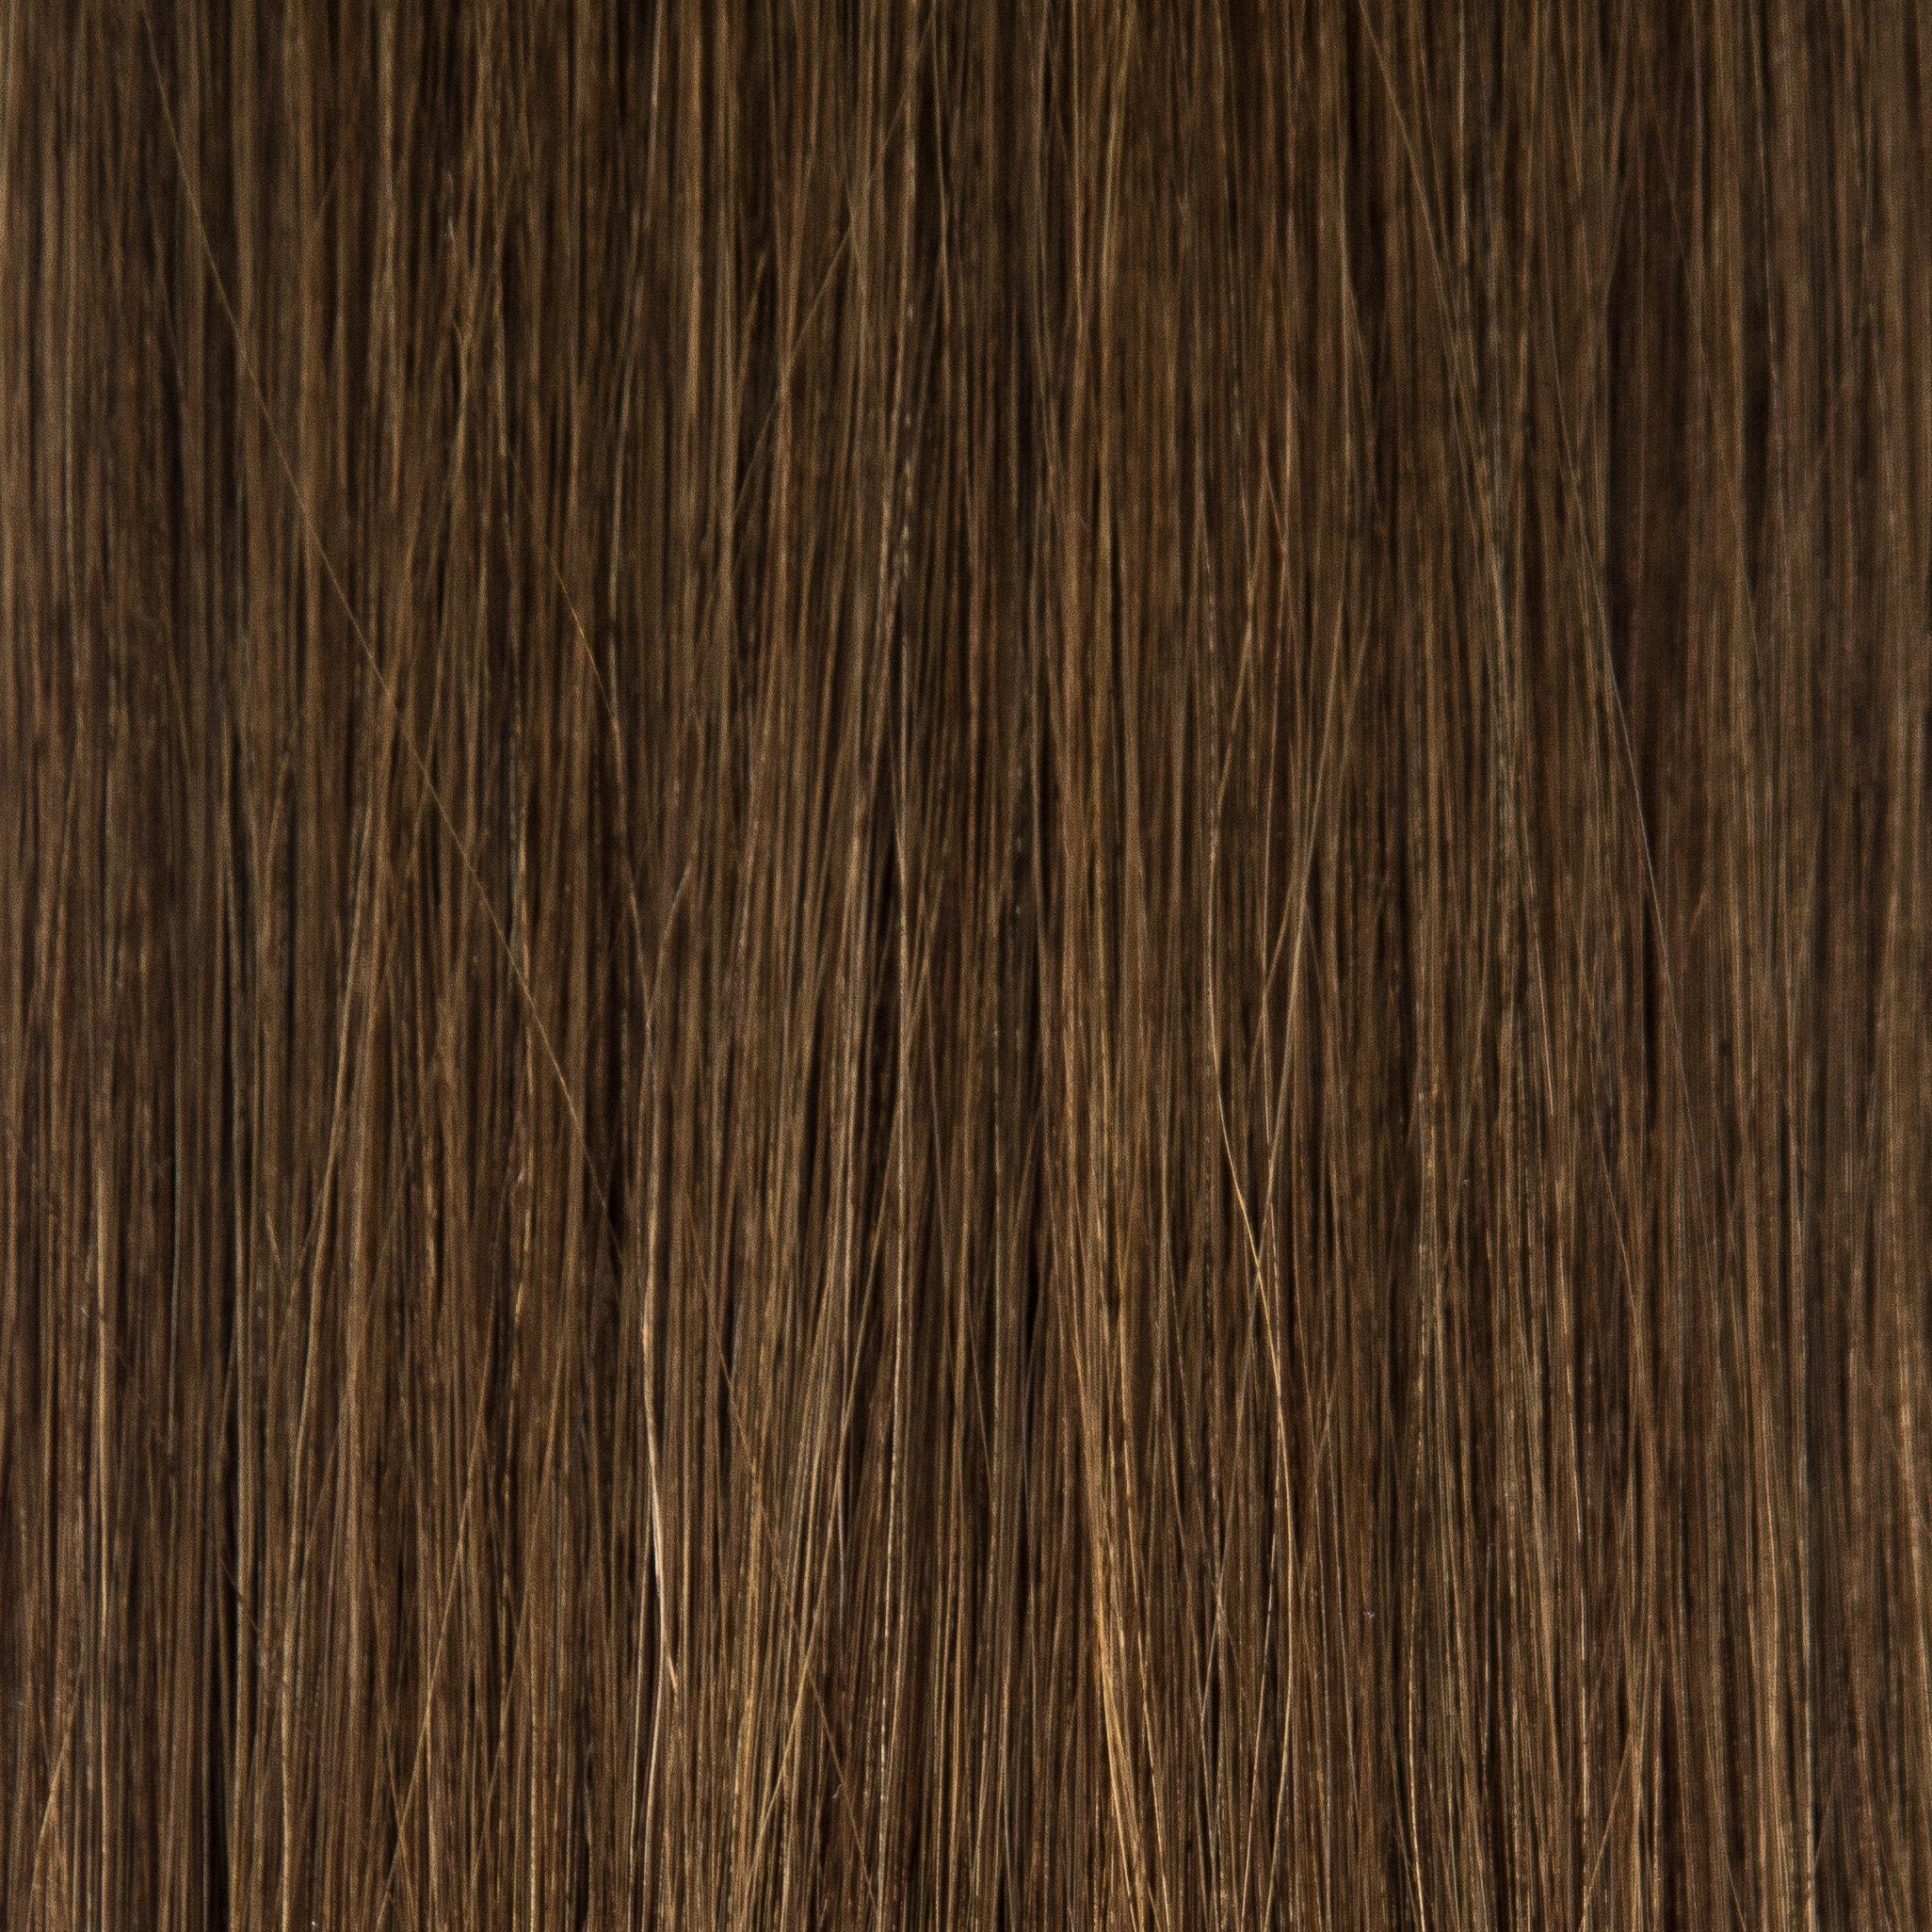 Machine_Sewn_Weft - Laced Hair Machine Sewn Weft Extensions #5 (Caramel)